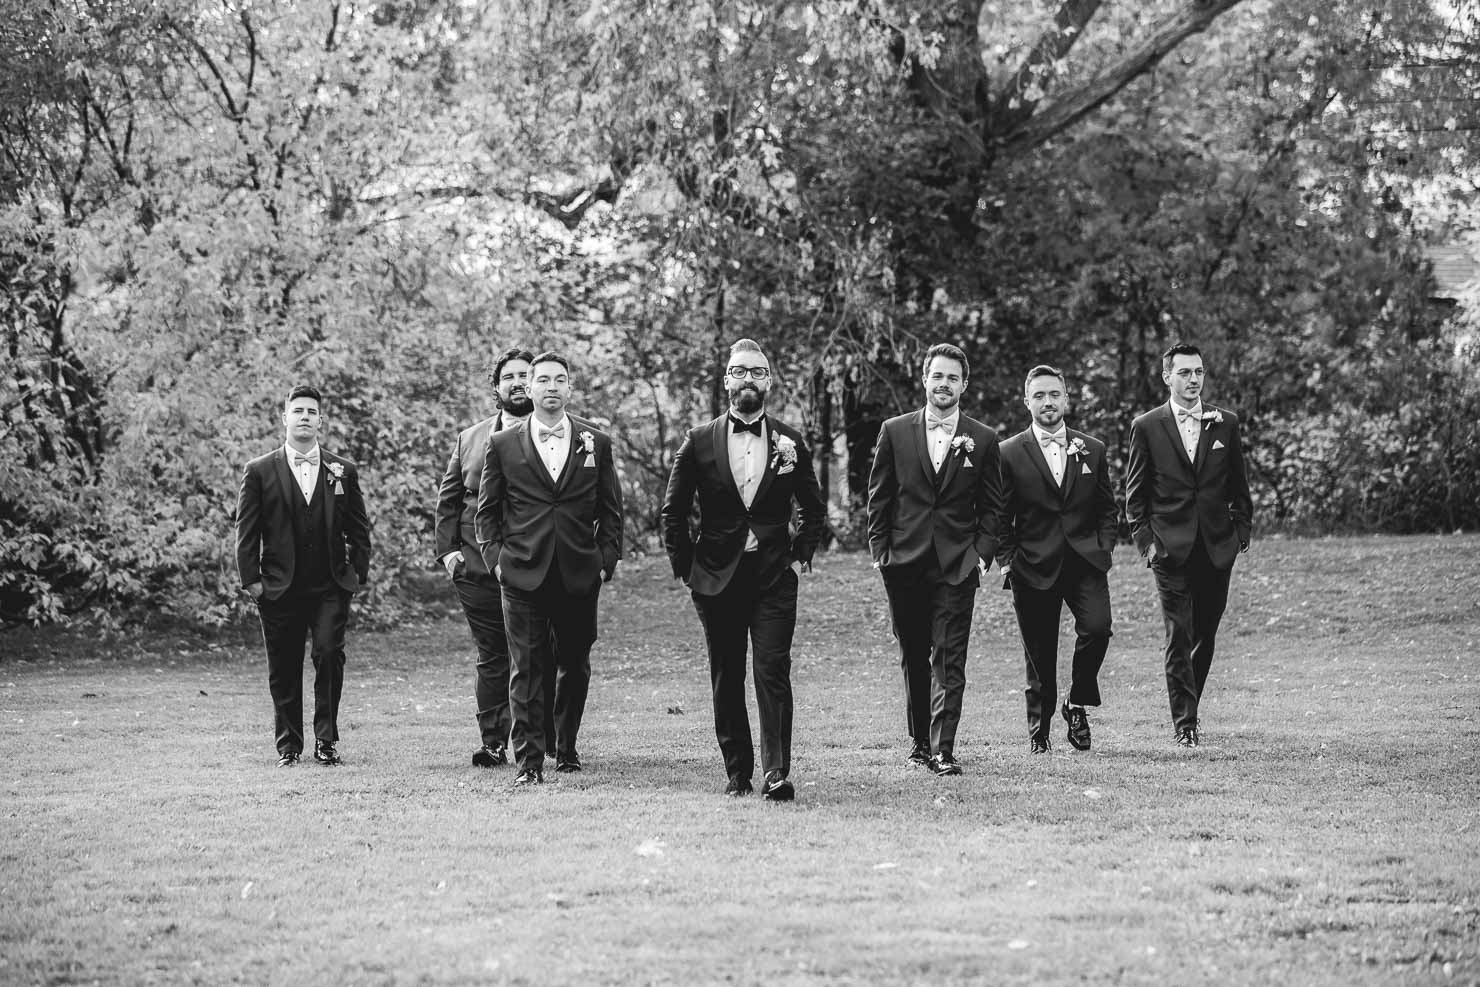 wedding, groom, groomsmen, wedding, sudbury wedding, akaiserphoto, wedding photographer